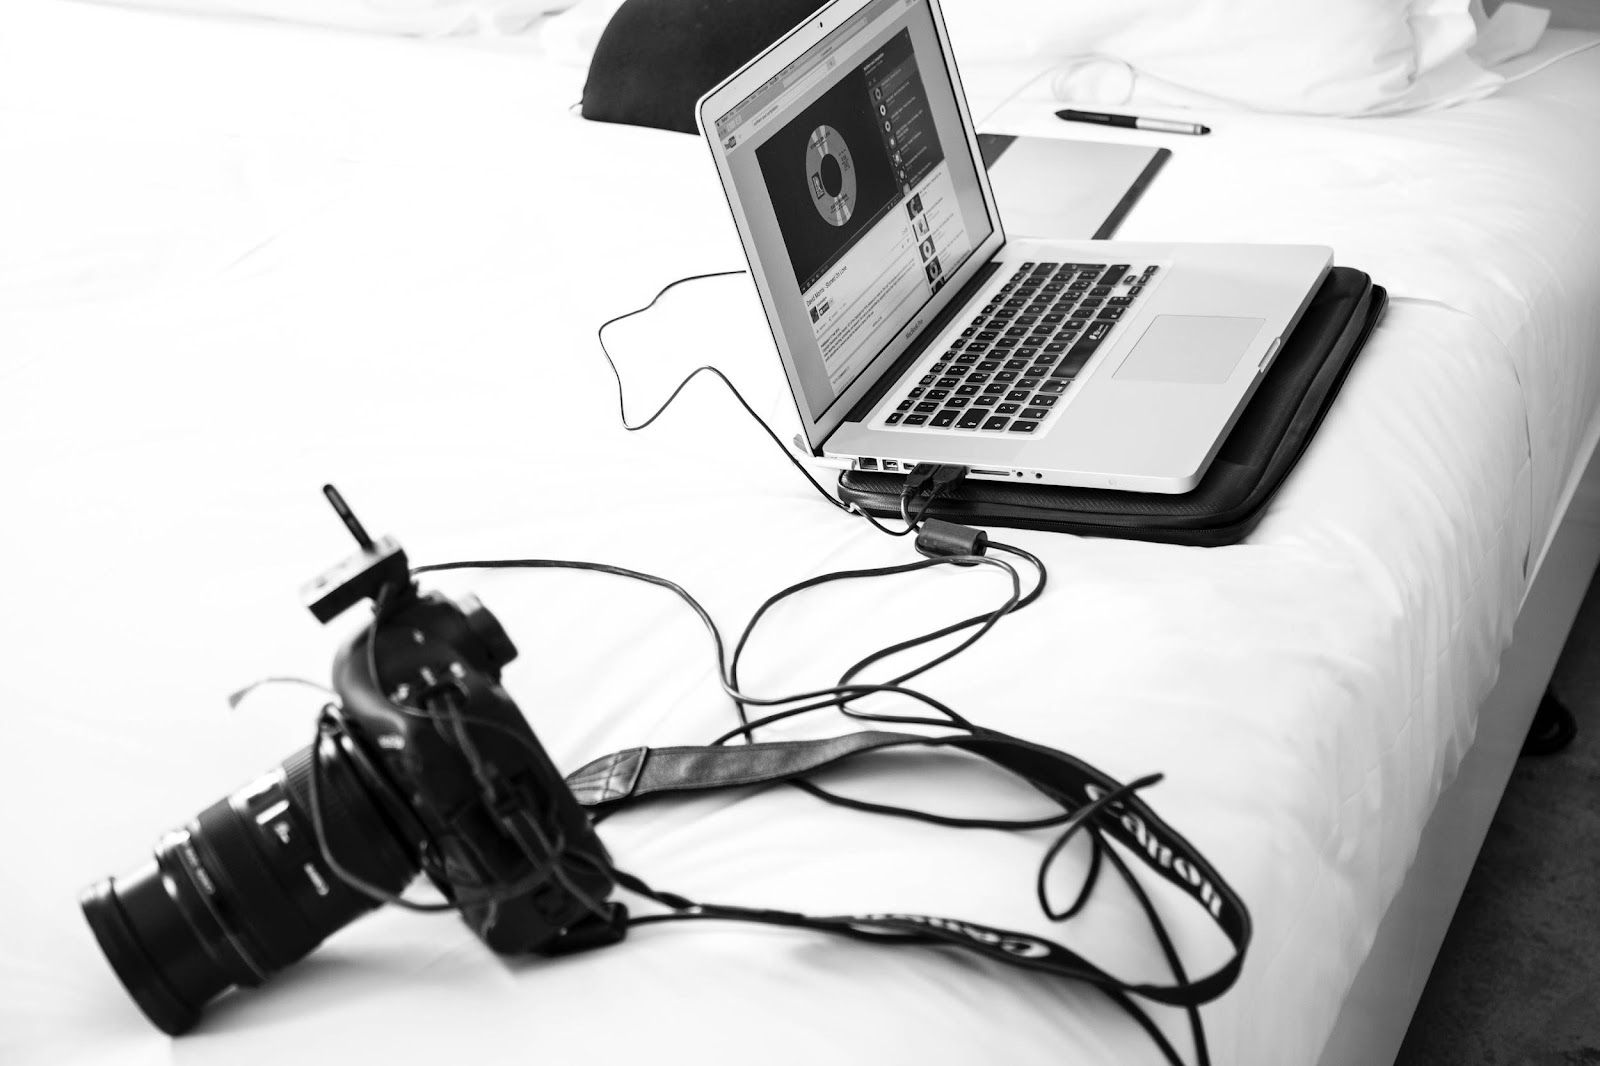 camera connected to laptop